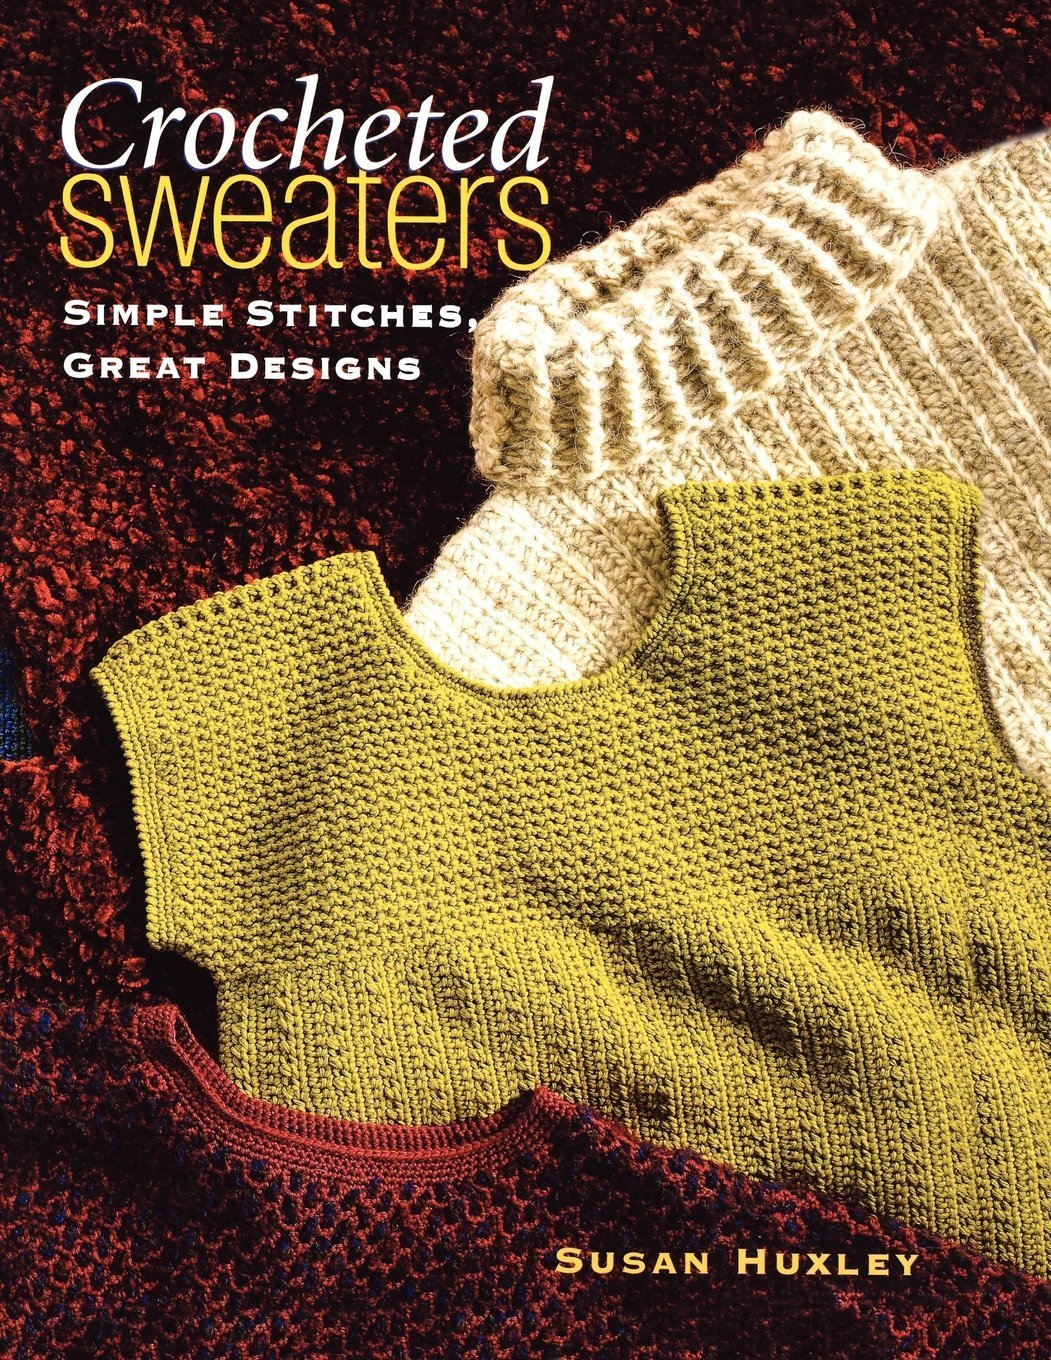 Crocheted Sweaters Book by Susan Huxley